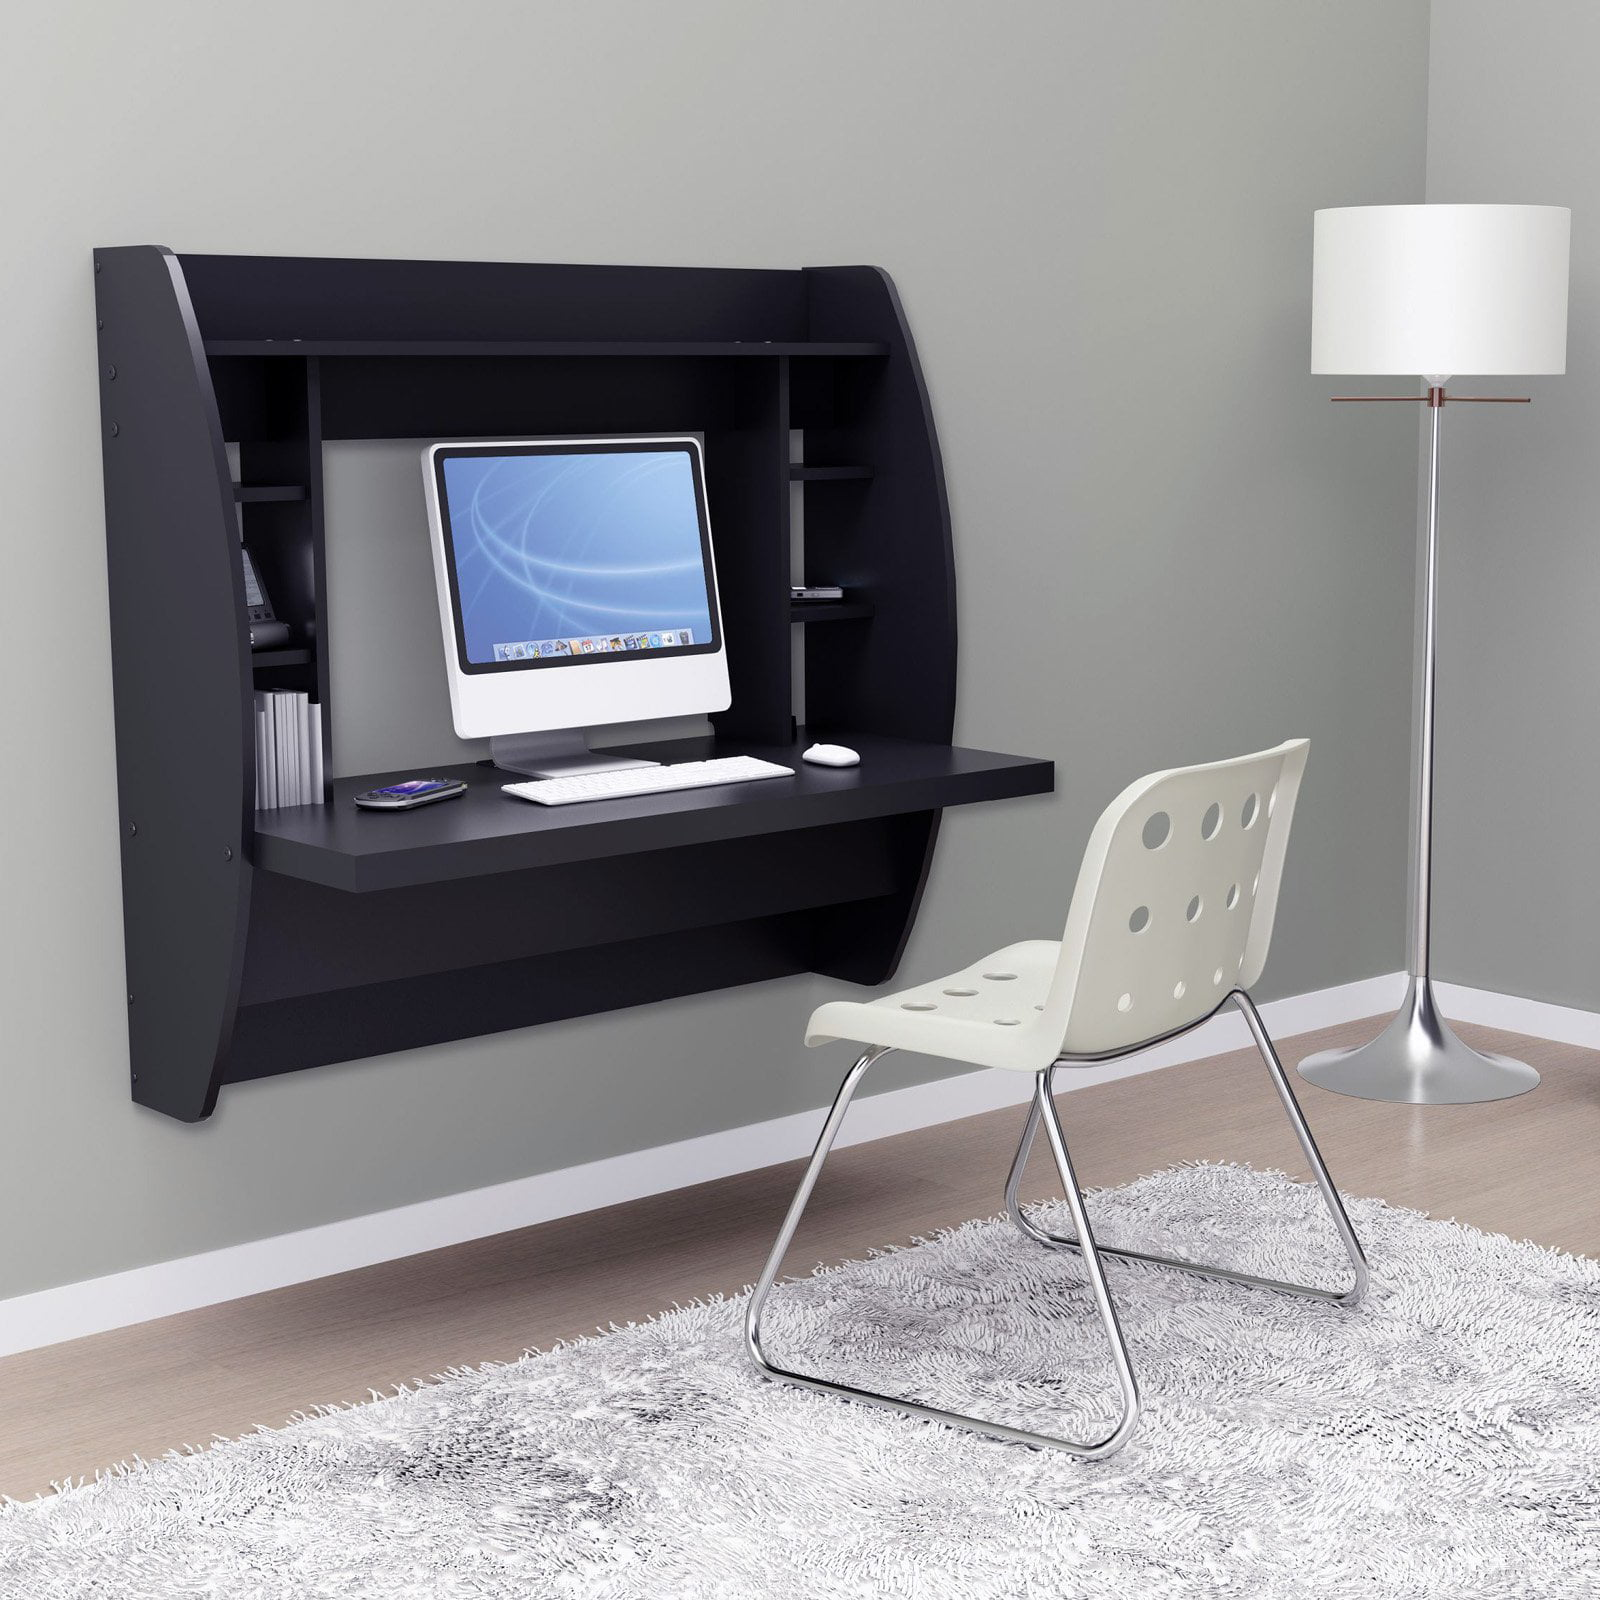 Prepac Tall Wall Mounted Floating Desk with Storage, Multiple Colors -  Walmart.com